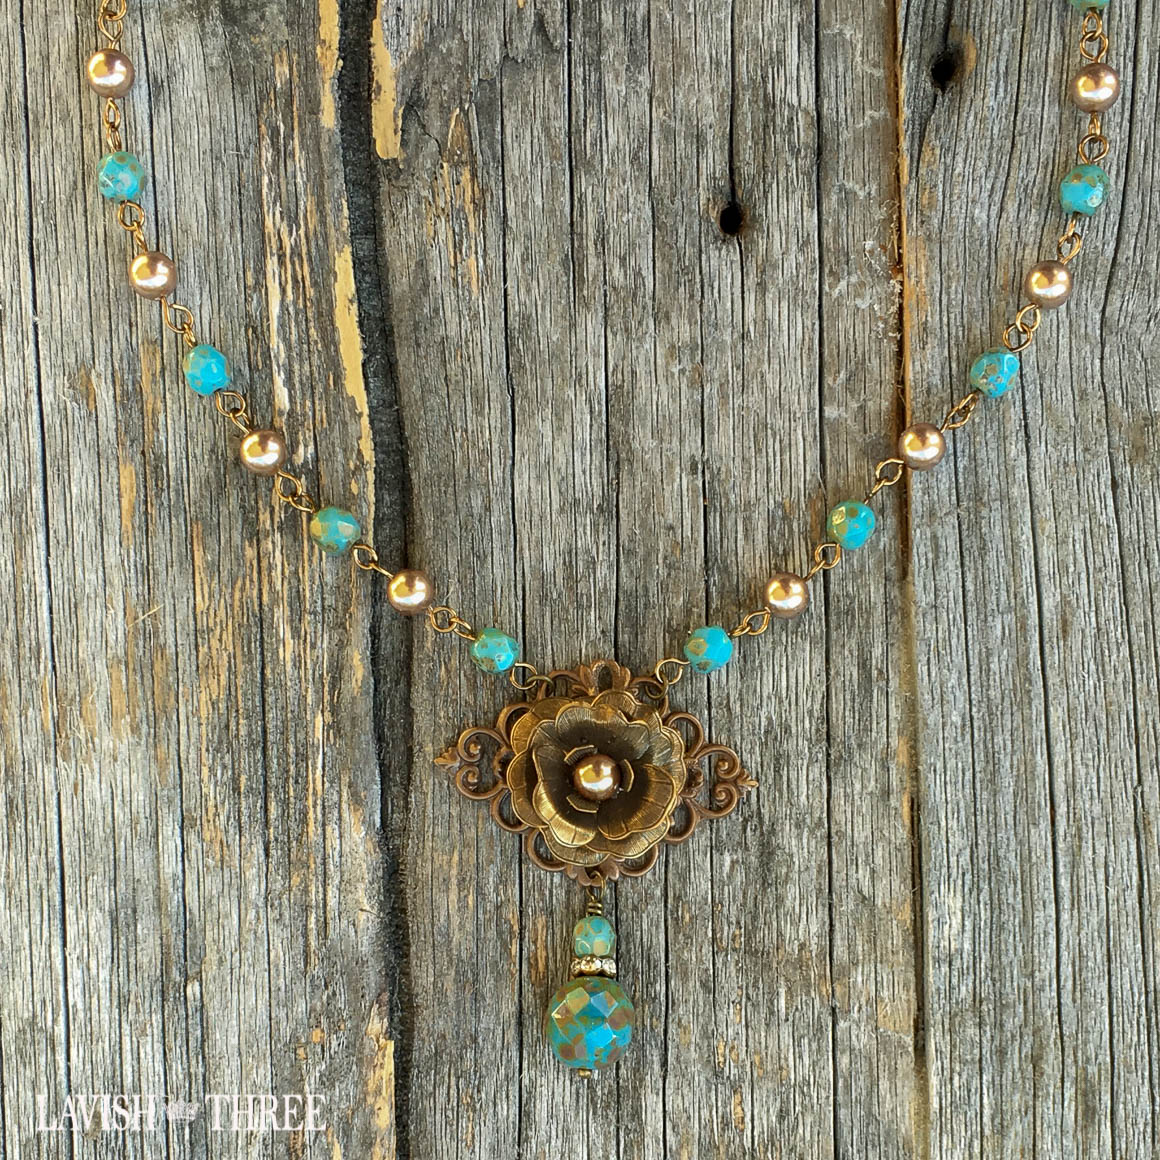 Blue vintage inspired necklace with flower pendant lavish three 3